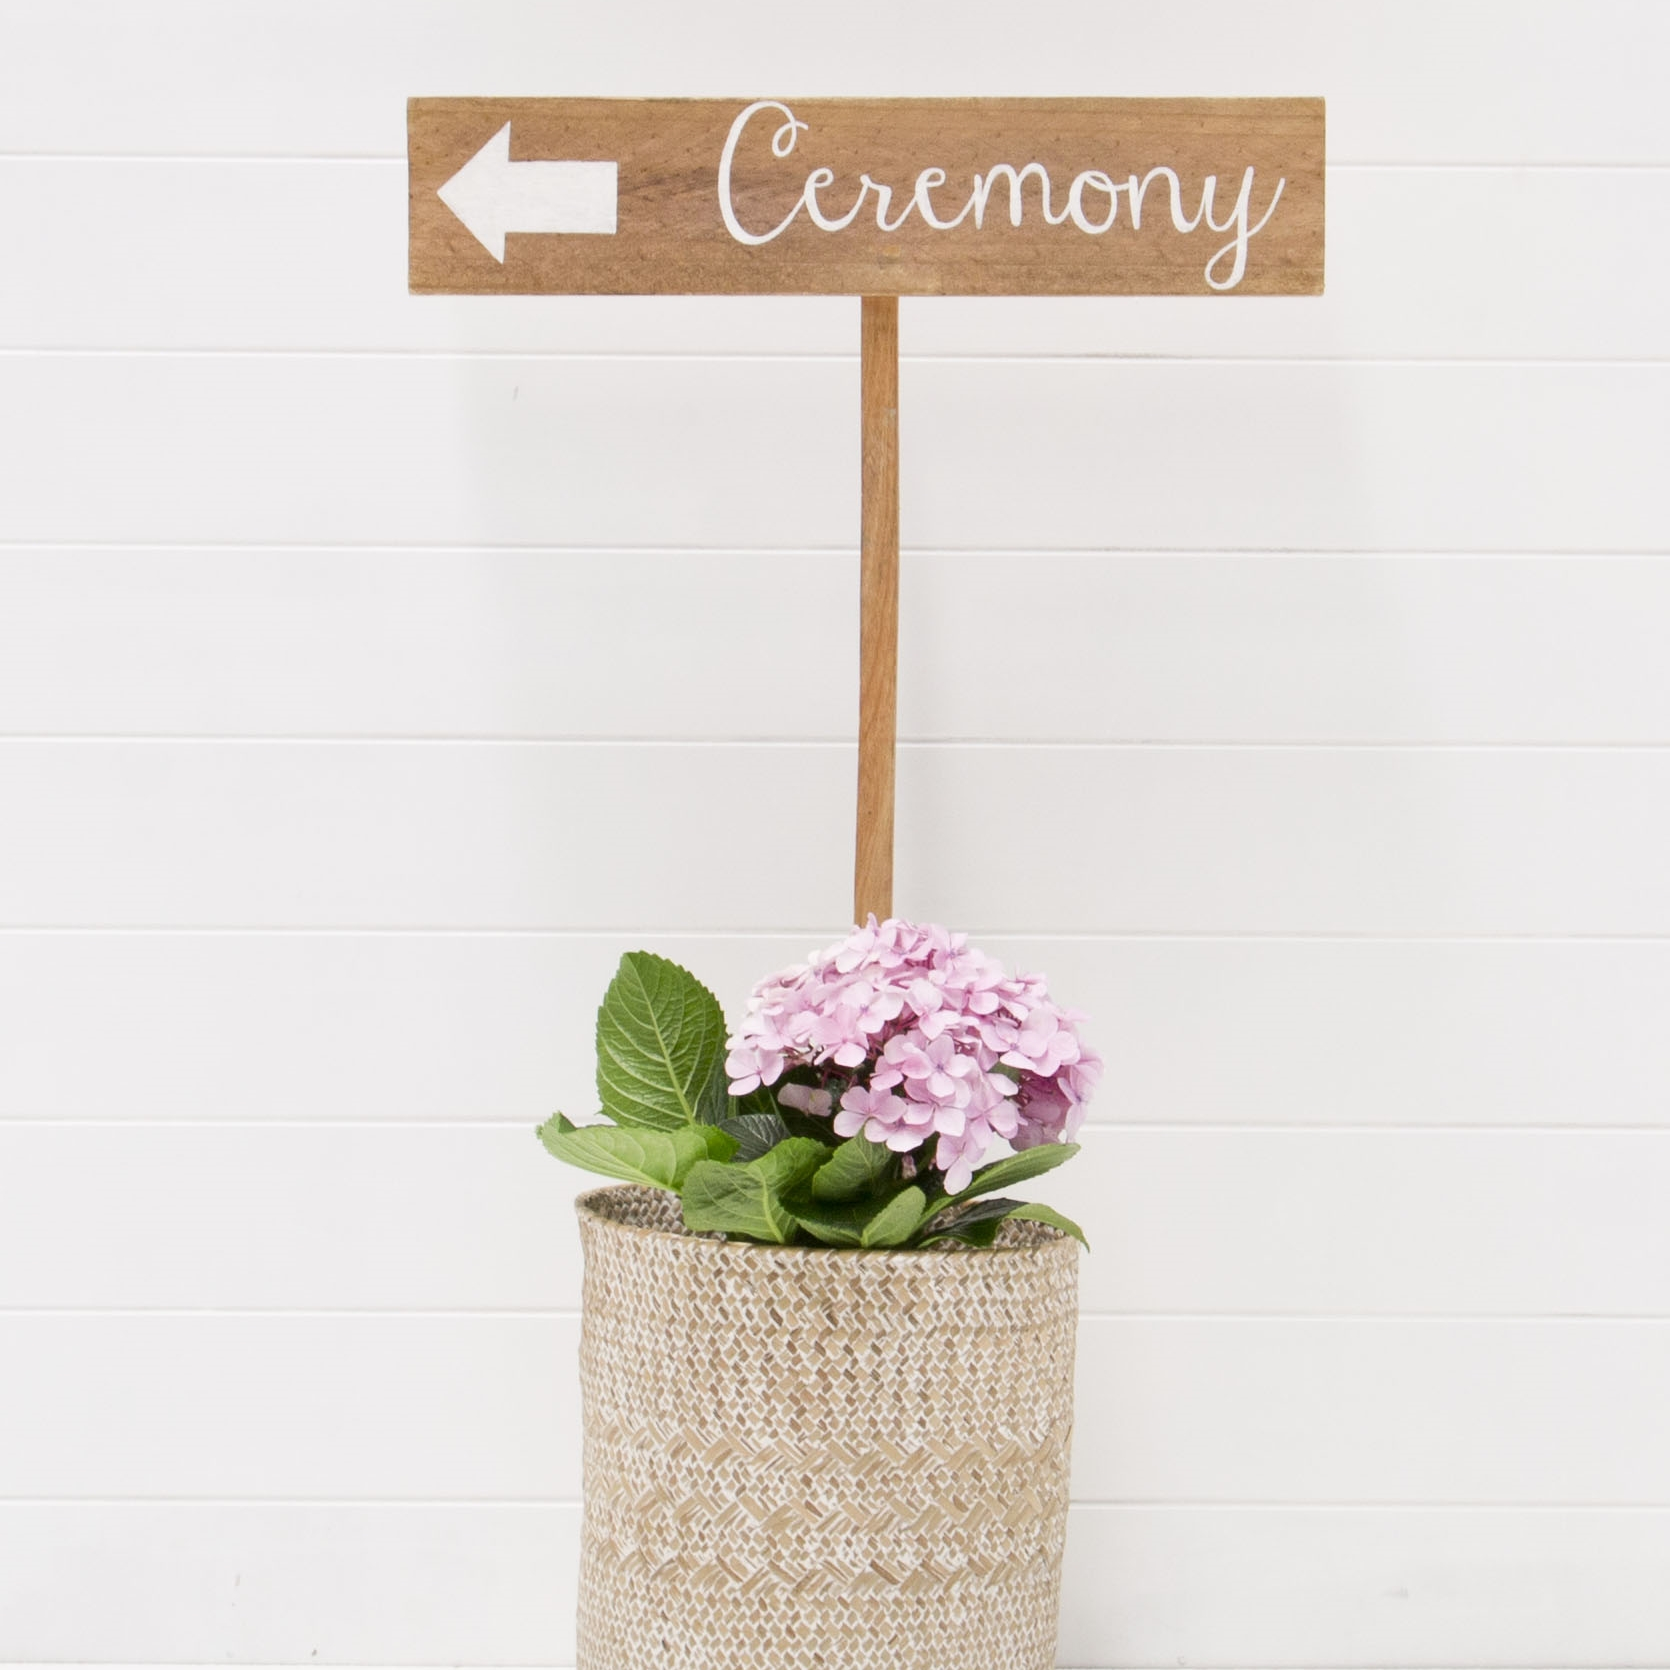 CEREMONY SIGN QTY: 1